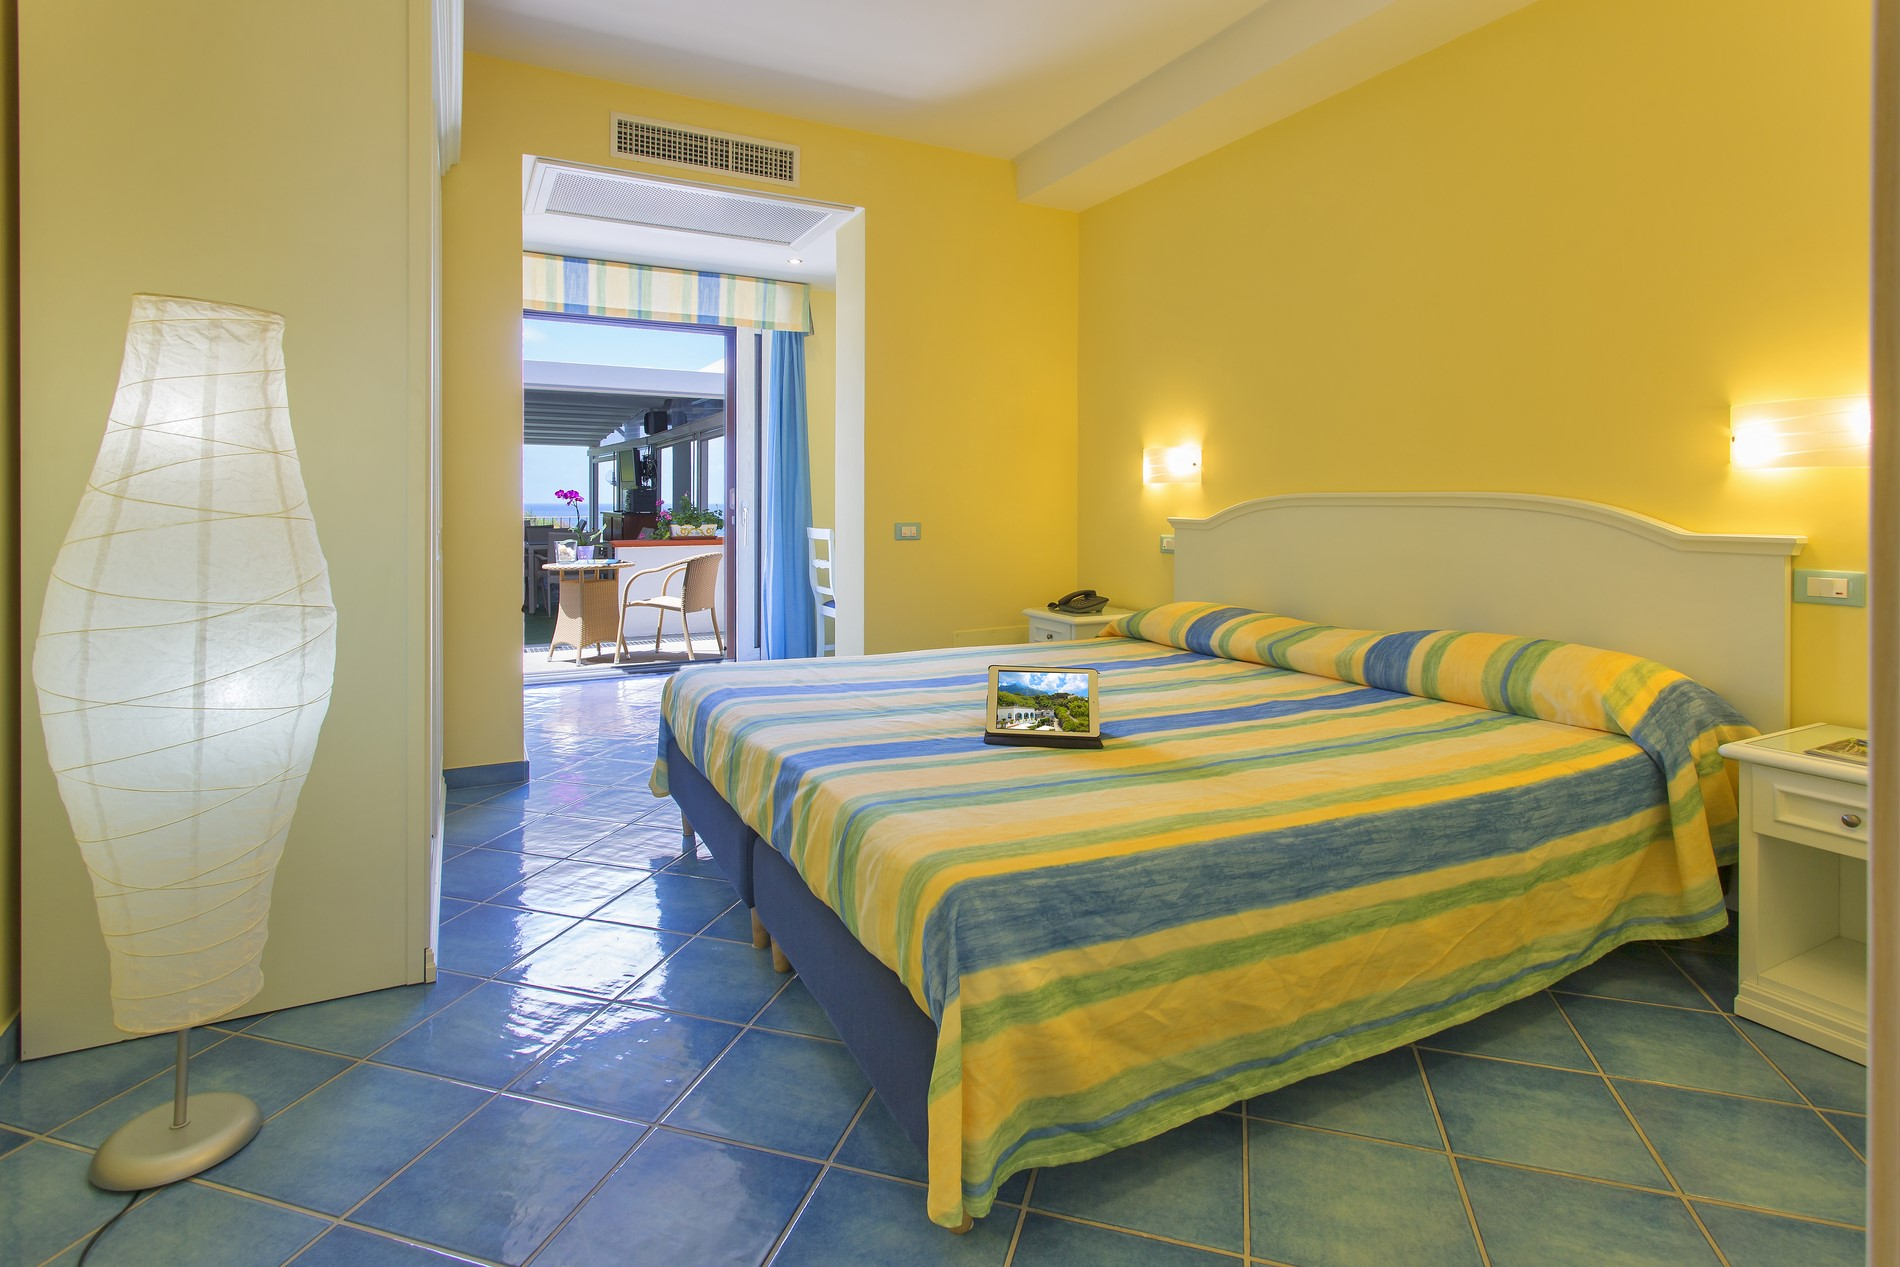 http://www.hotelcavadellisola.it/wp-content/uploads/2016/02/confort2-Copia.jpg